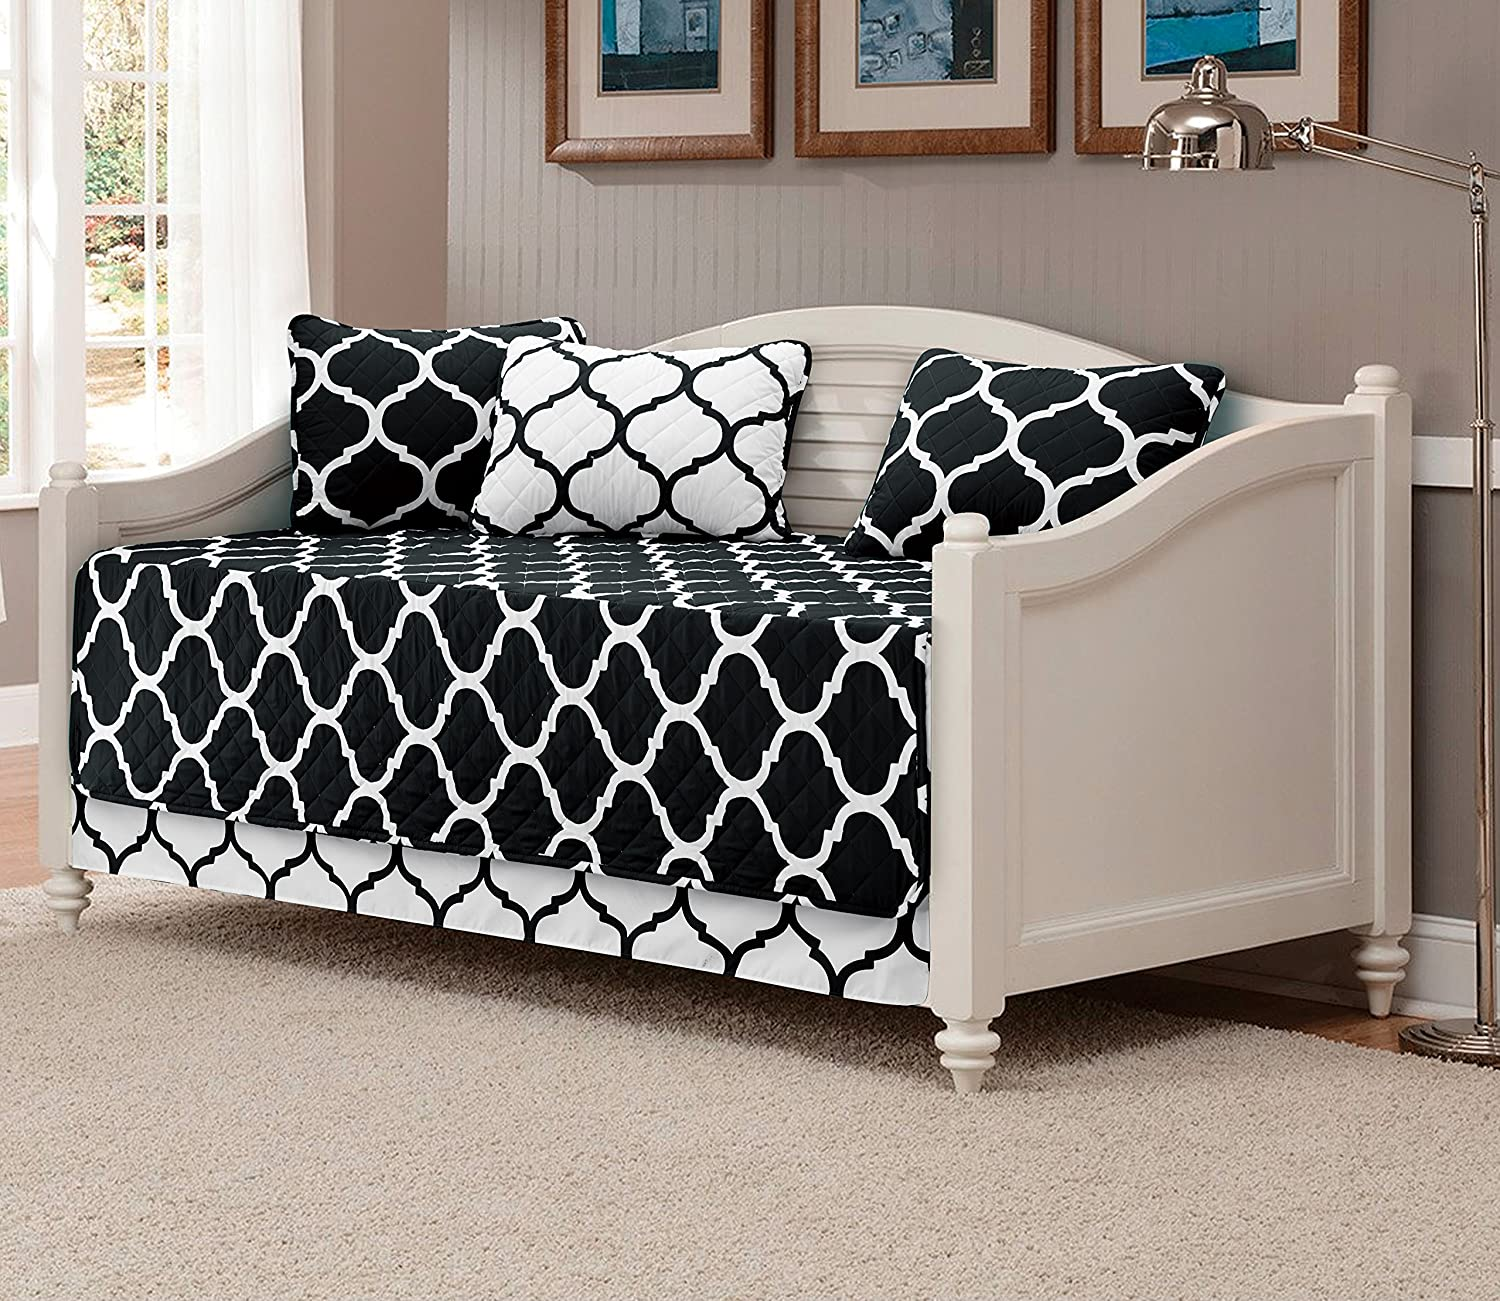 Mk Collection 5pc Modern Elegant Bedspread DayBed Cover Set Black//White Geometric Contemporary Pattern Quilted New